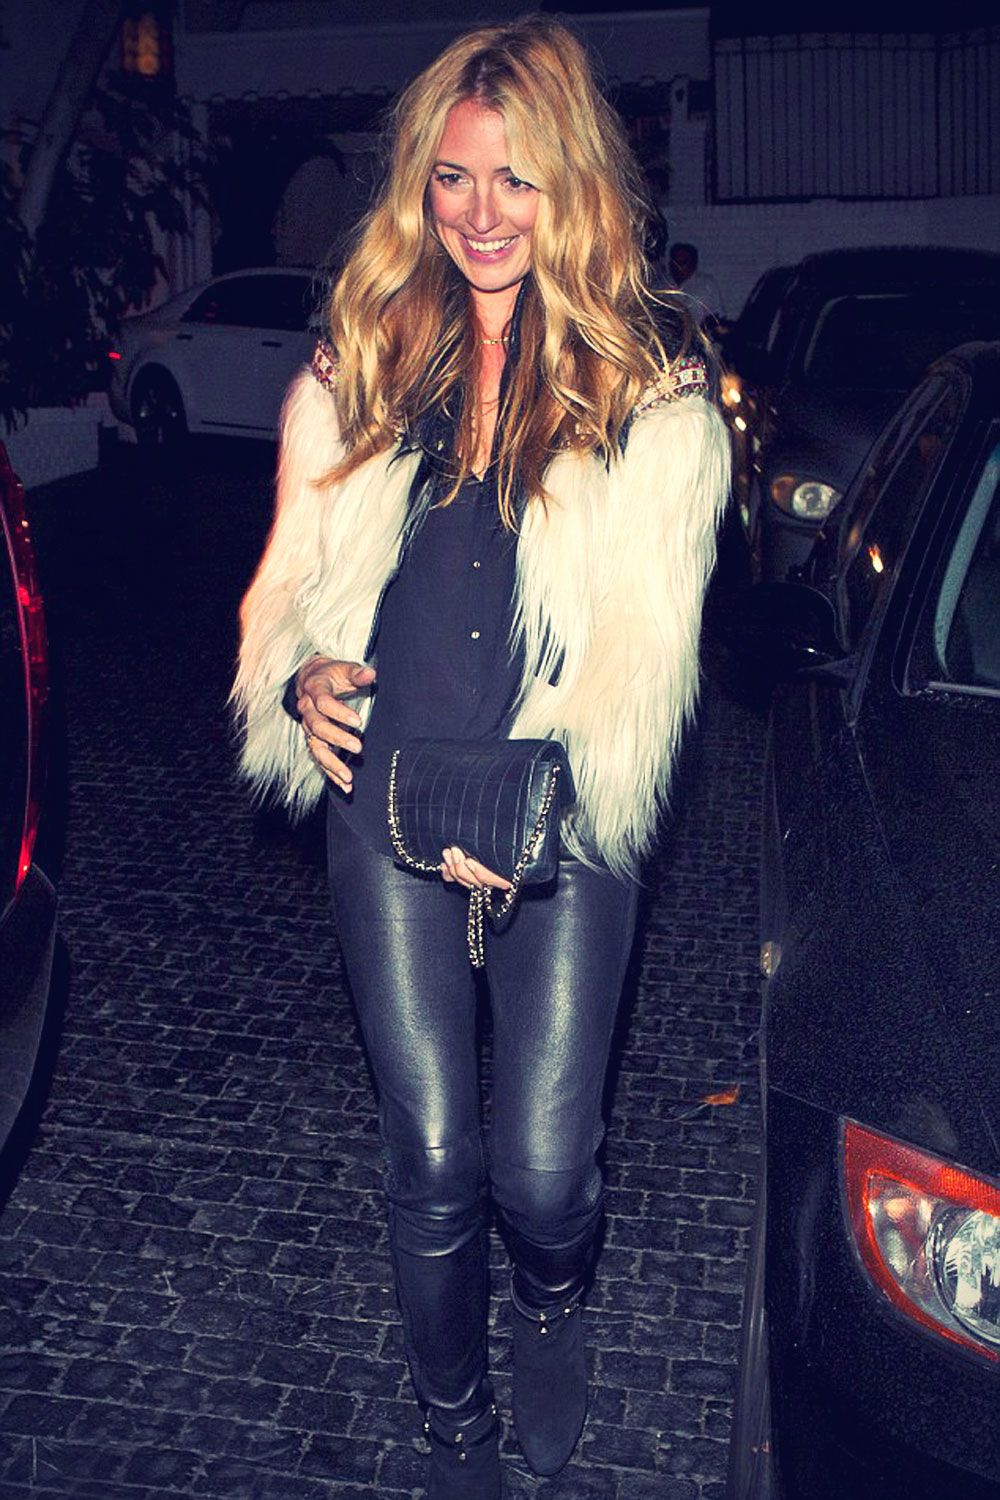 Cat Deeley leaves the Chateau Marmont